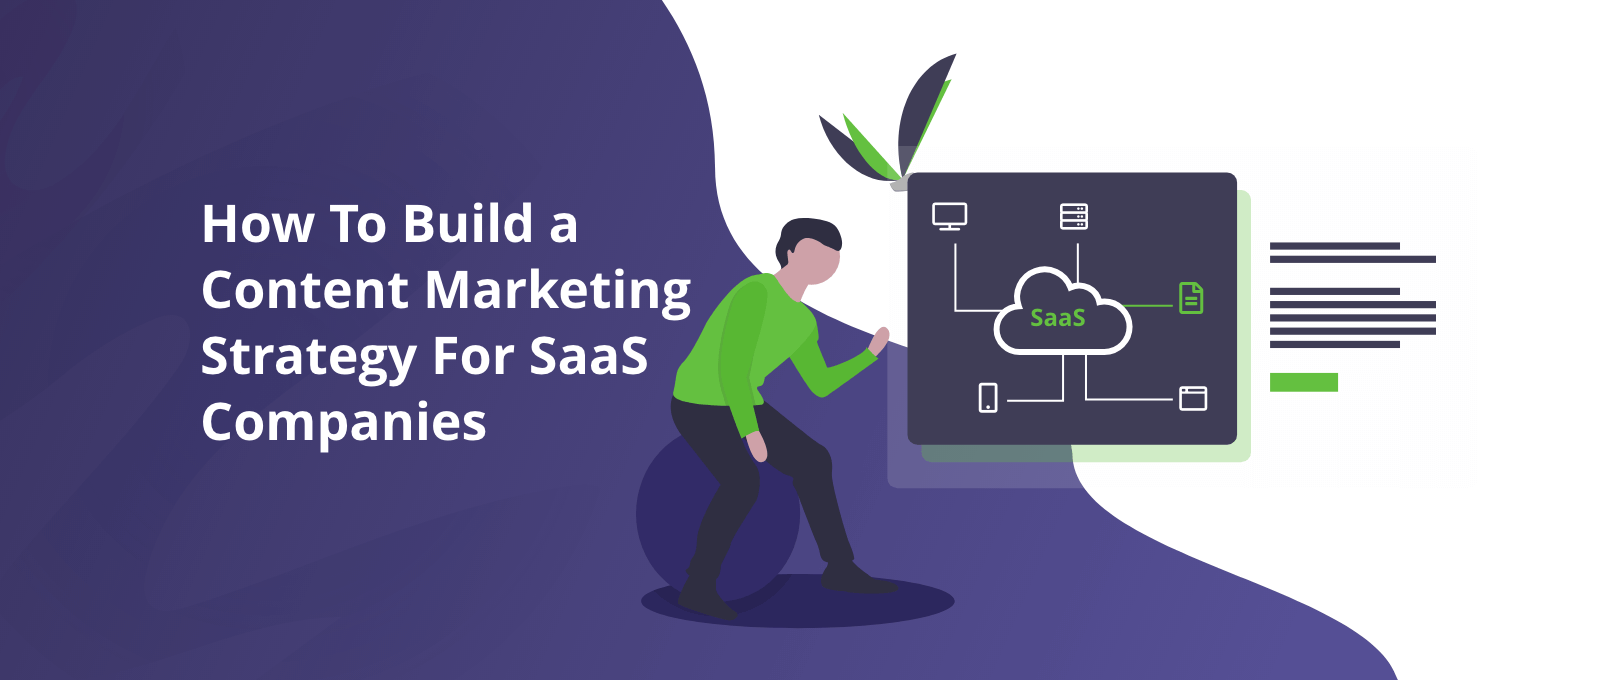 Content Marketing Strategy for SaaS